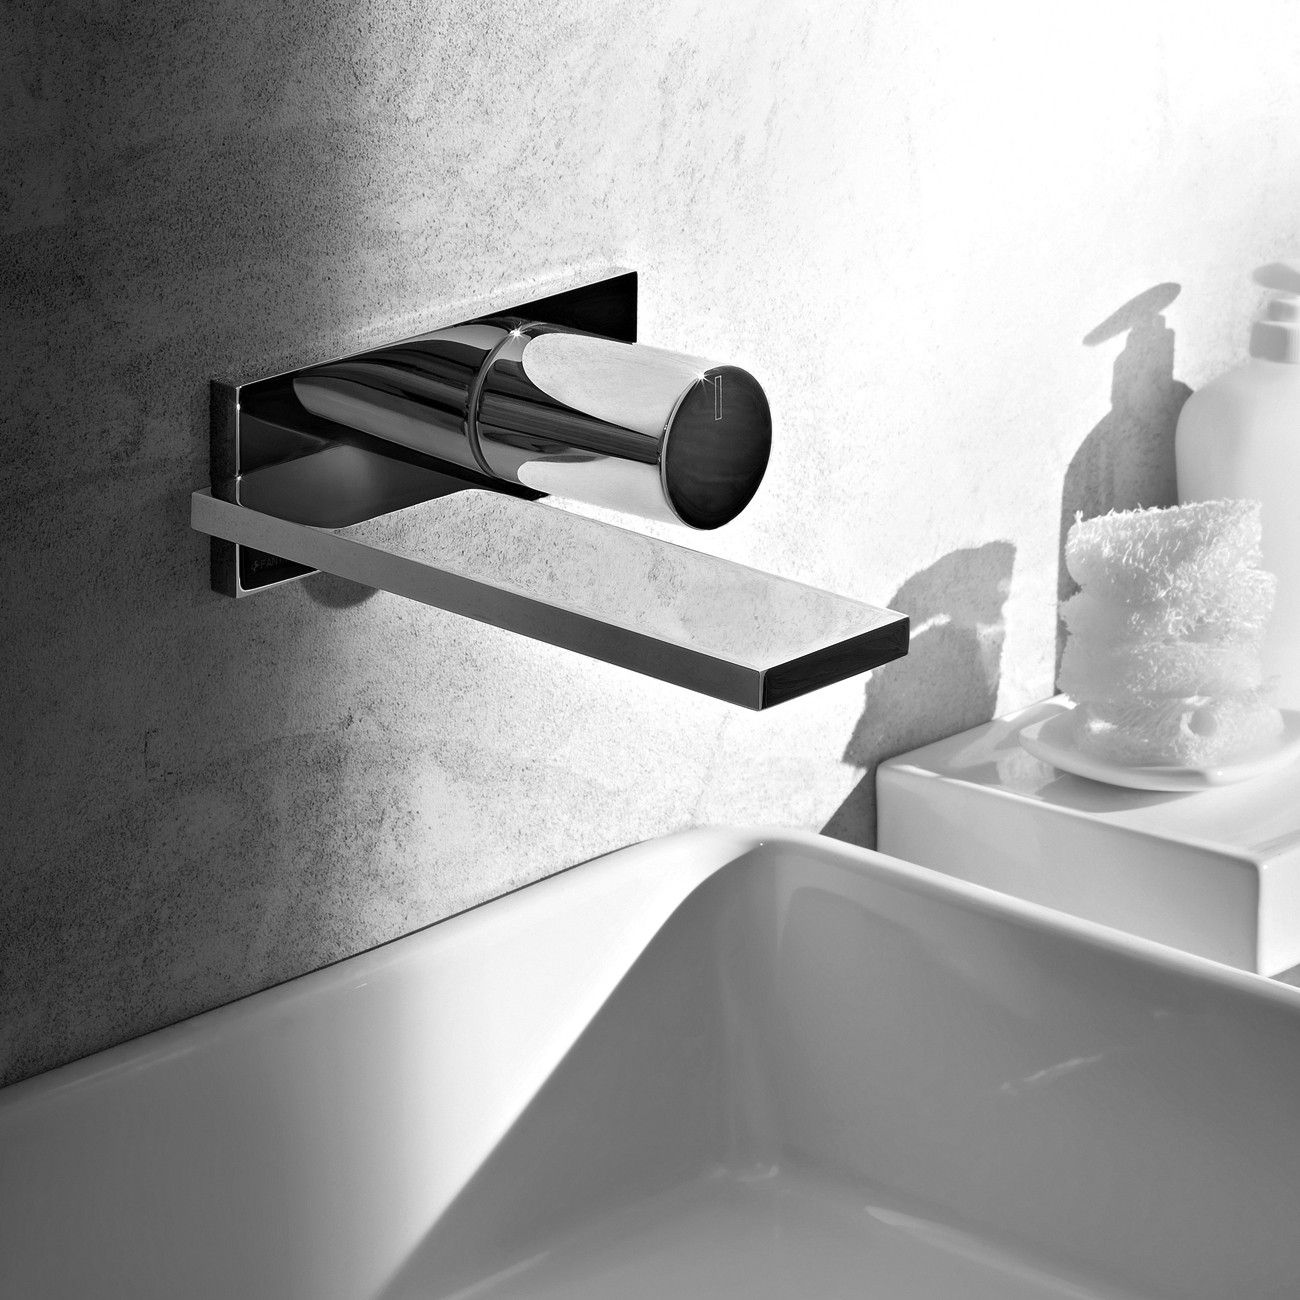 Bathroom Fixtures Outlet fantini milano wall basin mixer & outlet - rogerseller $1395